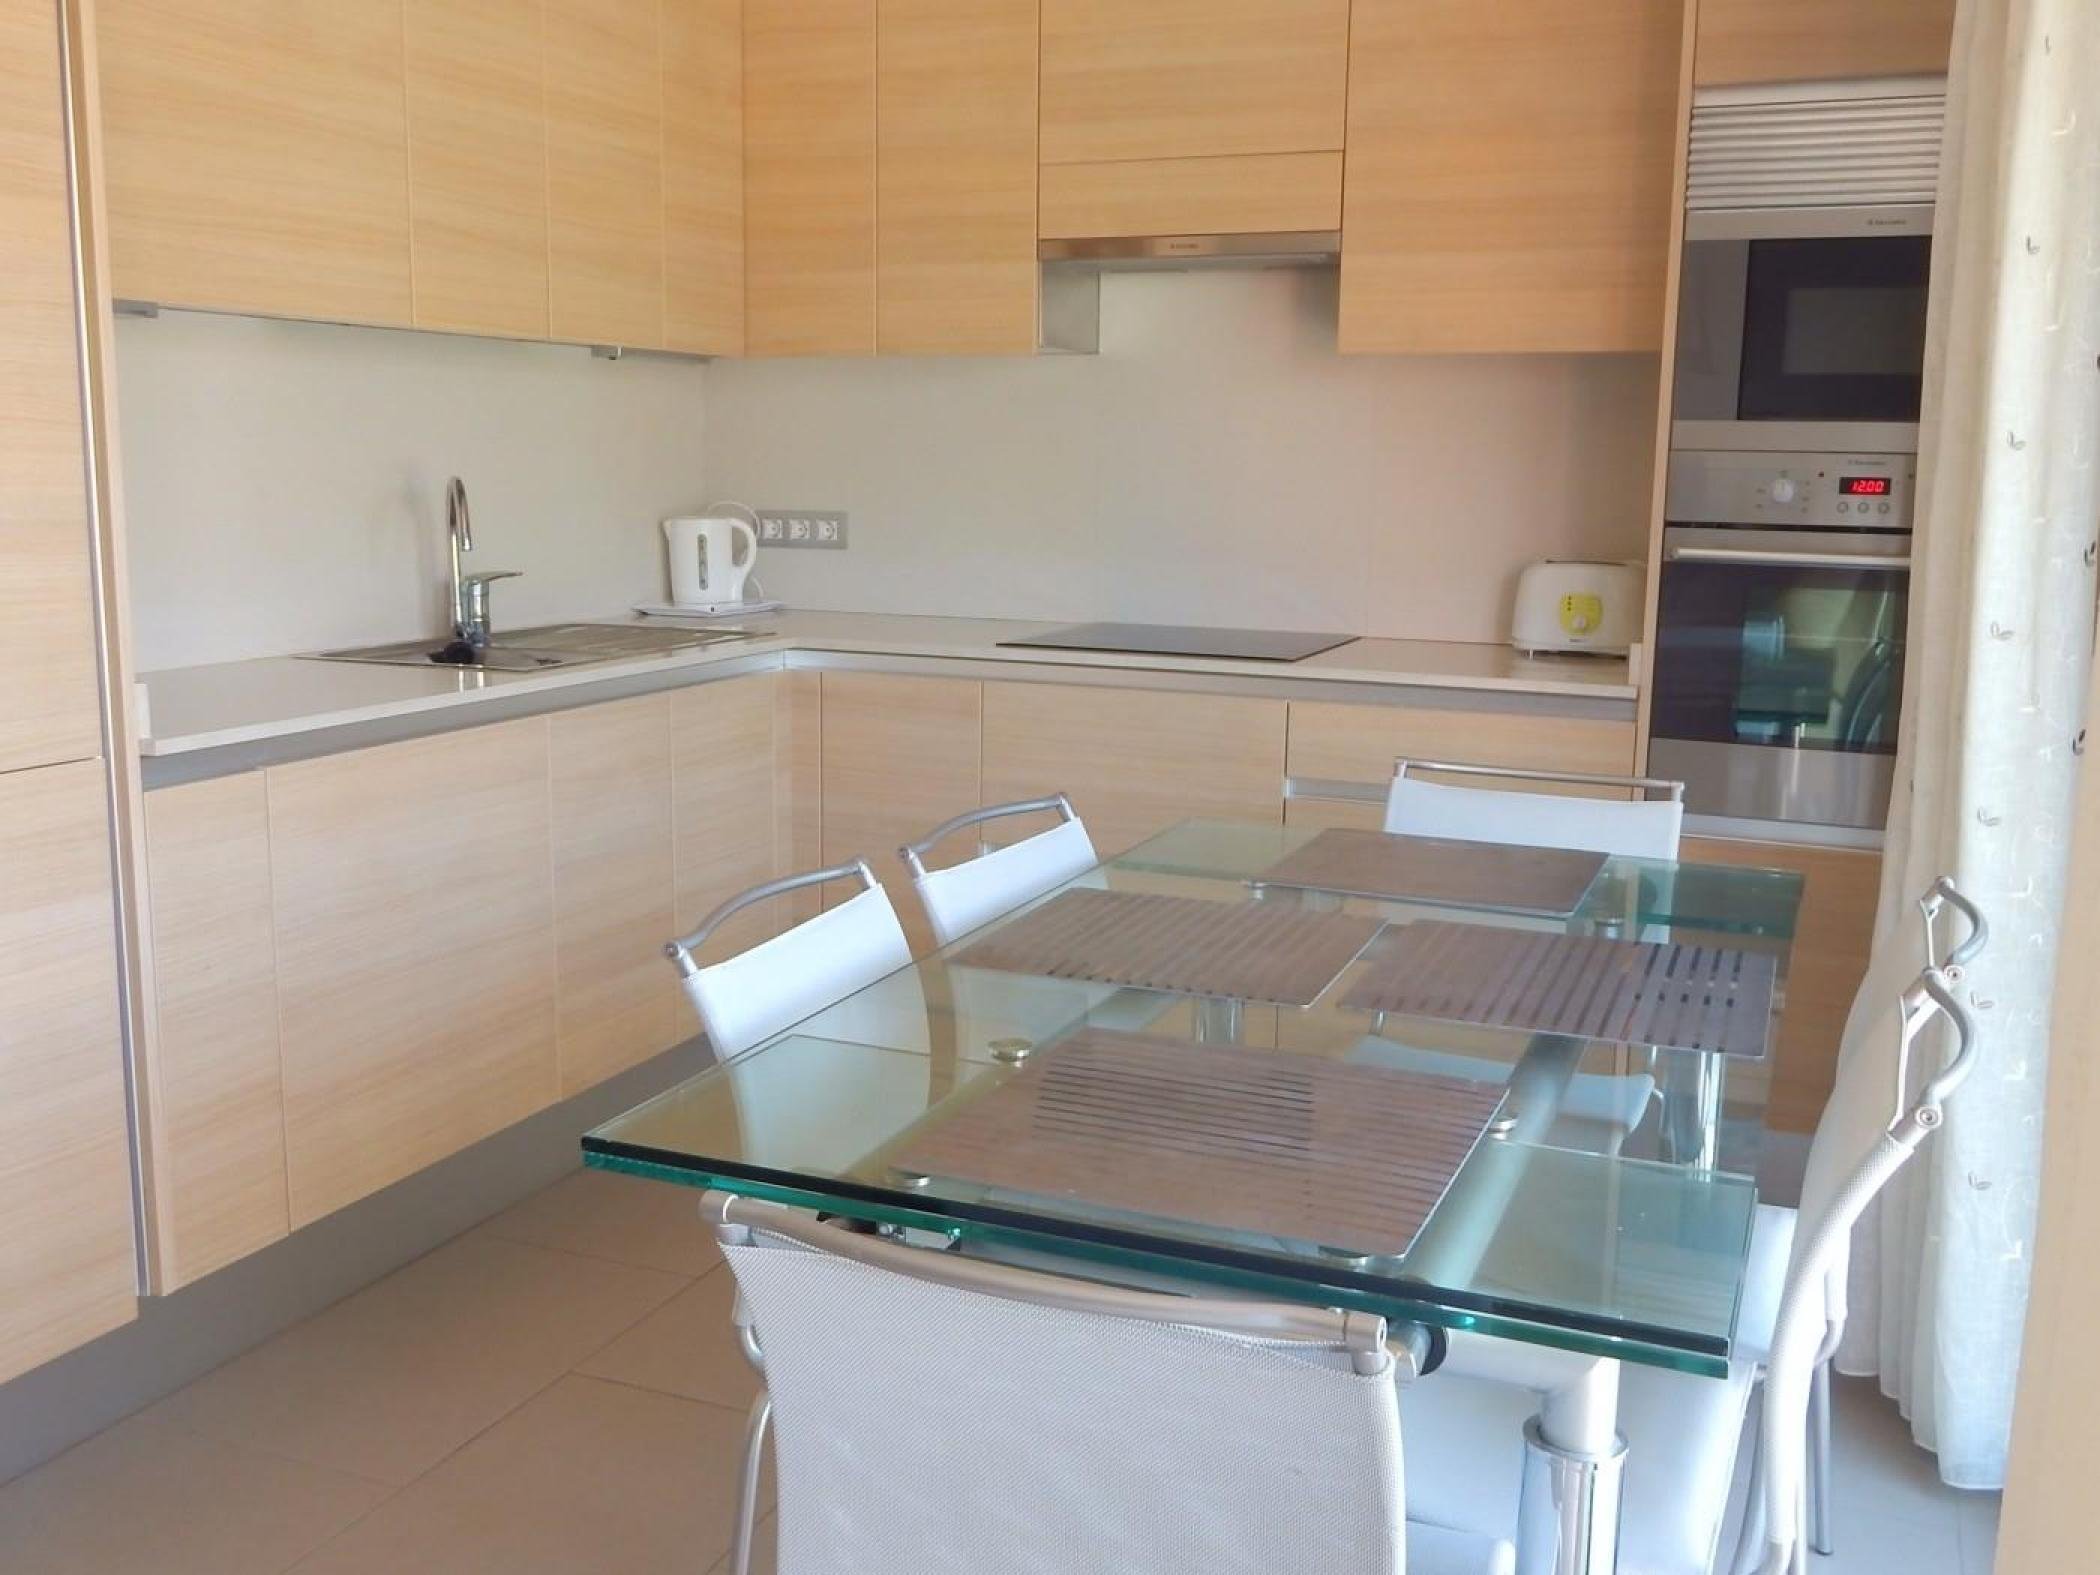 Rent Apartment in Platja d'Aro - Ground floor in front of the sea Ridaura BX4 - 7